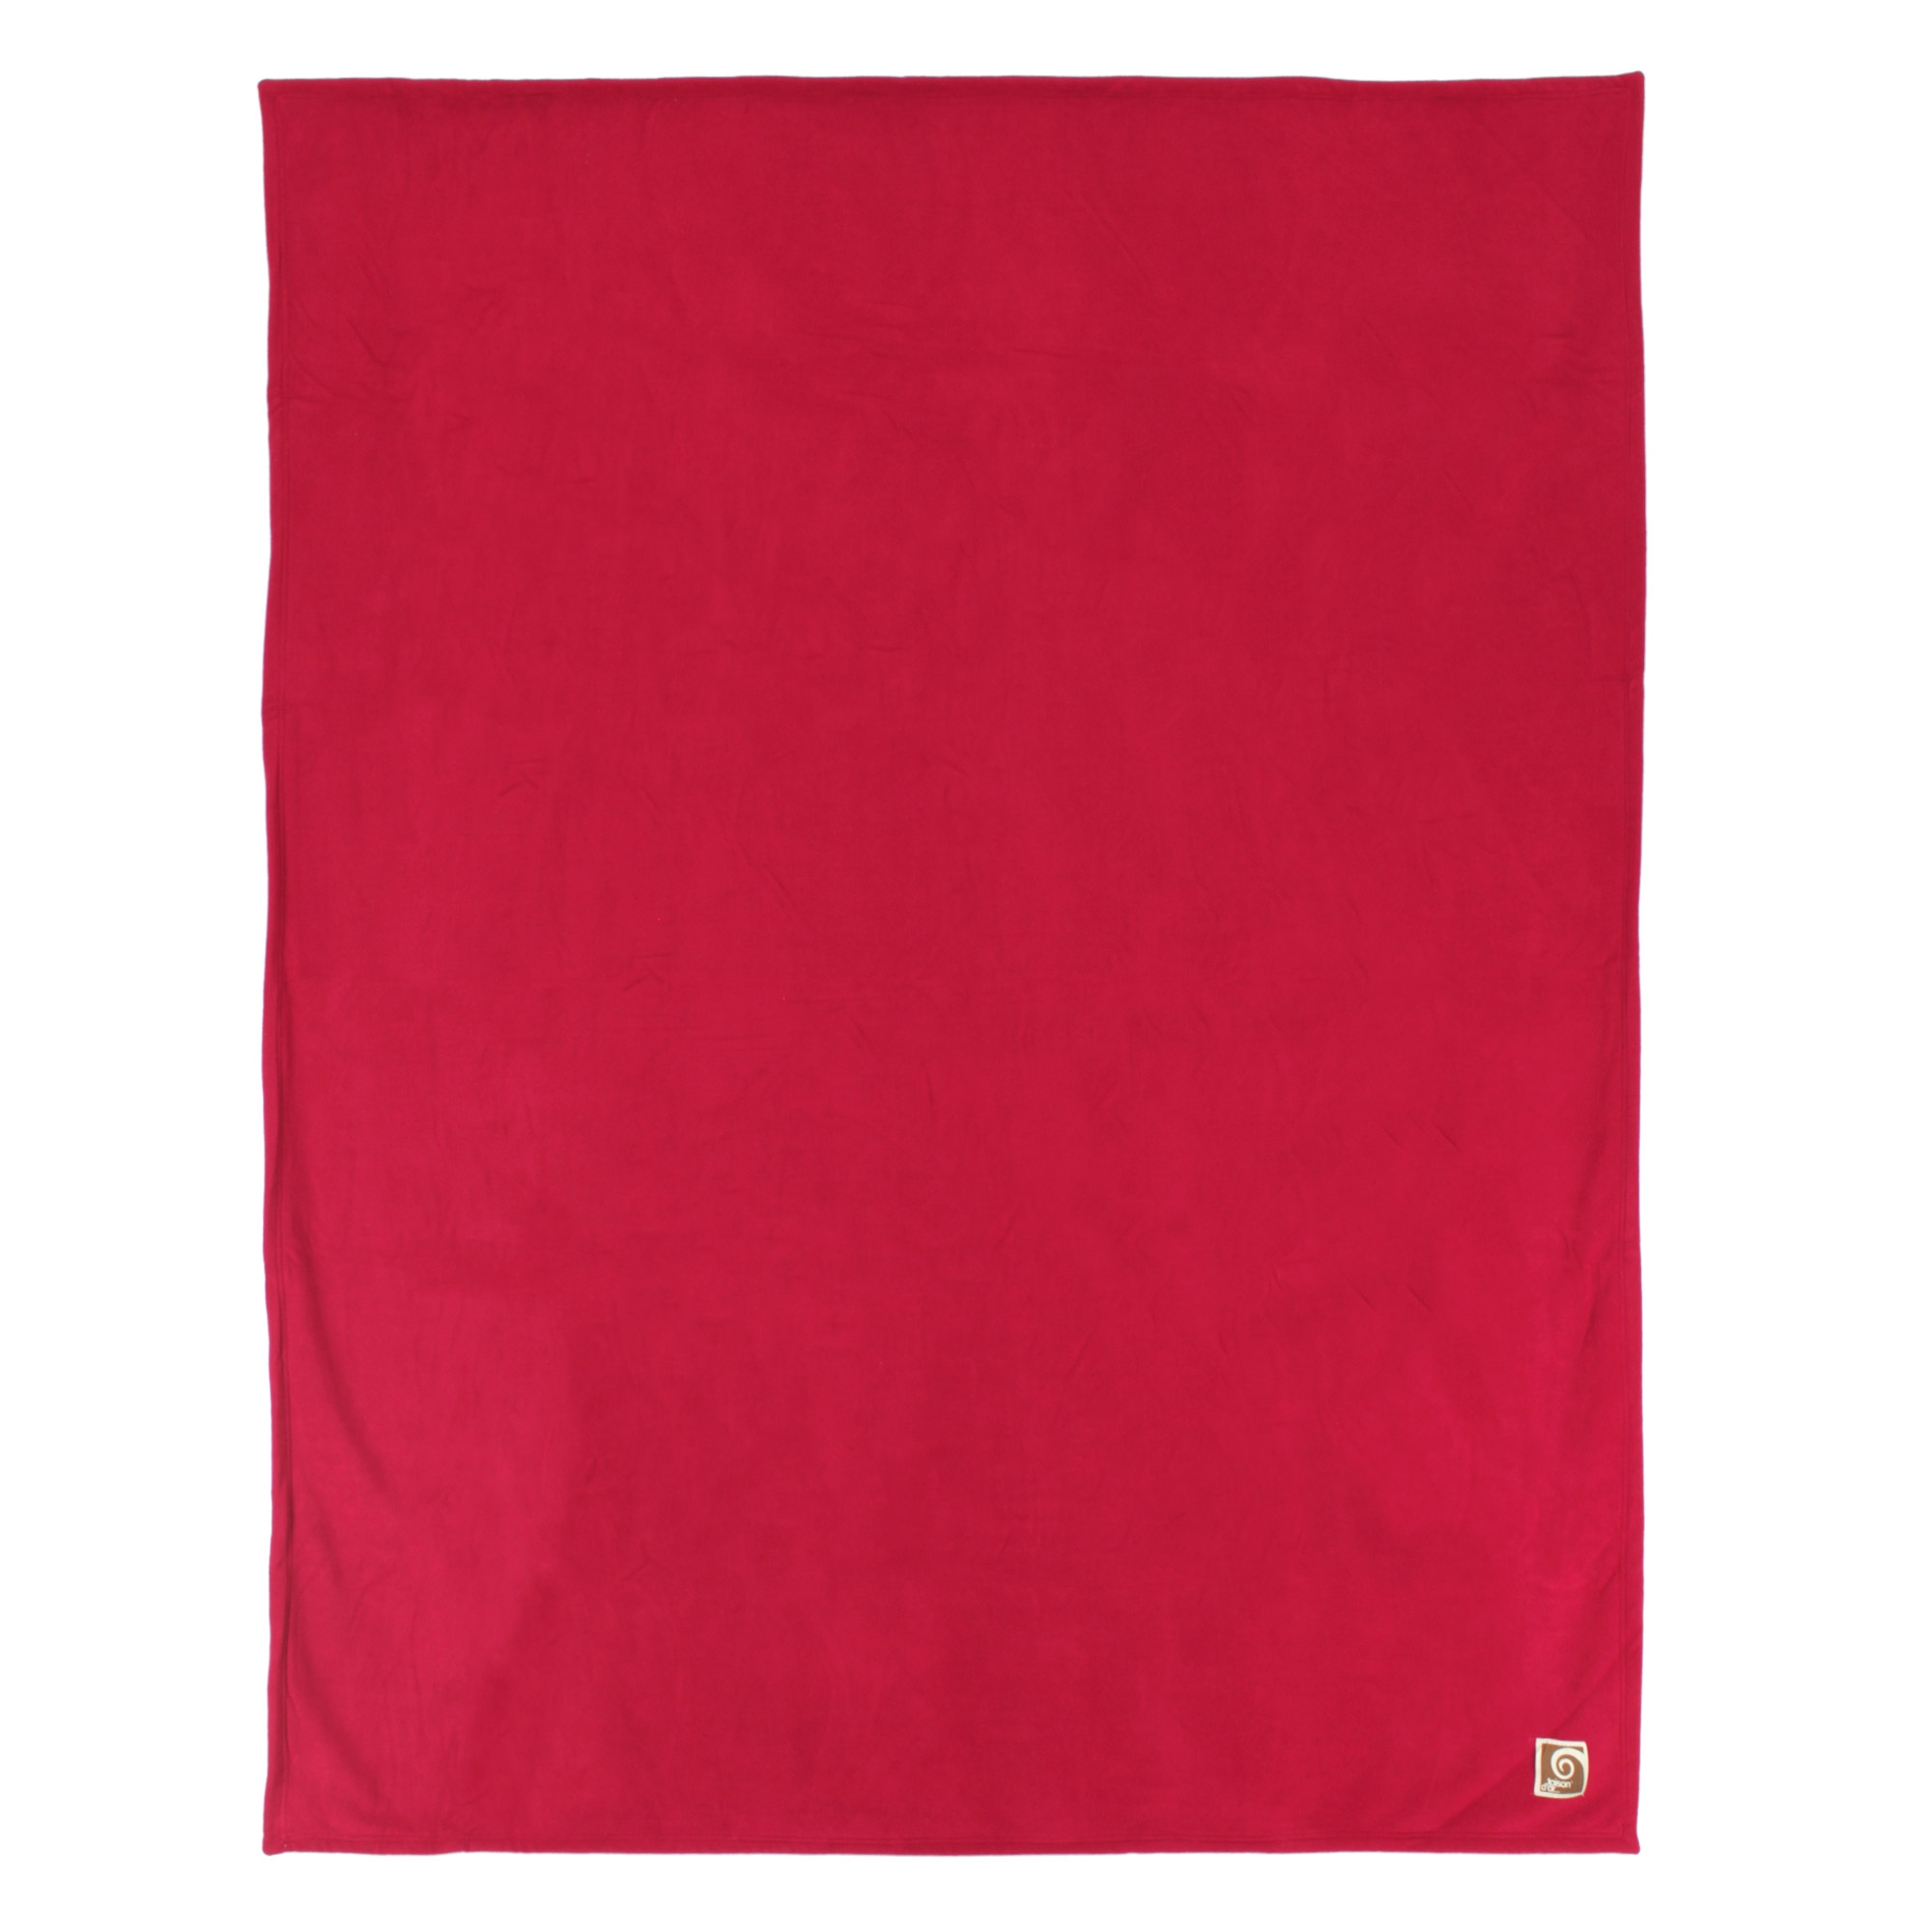 Couverture-polaire-luxe-180x220-100-polyester-430g-m2-NARVIK-Rouge-Framboise